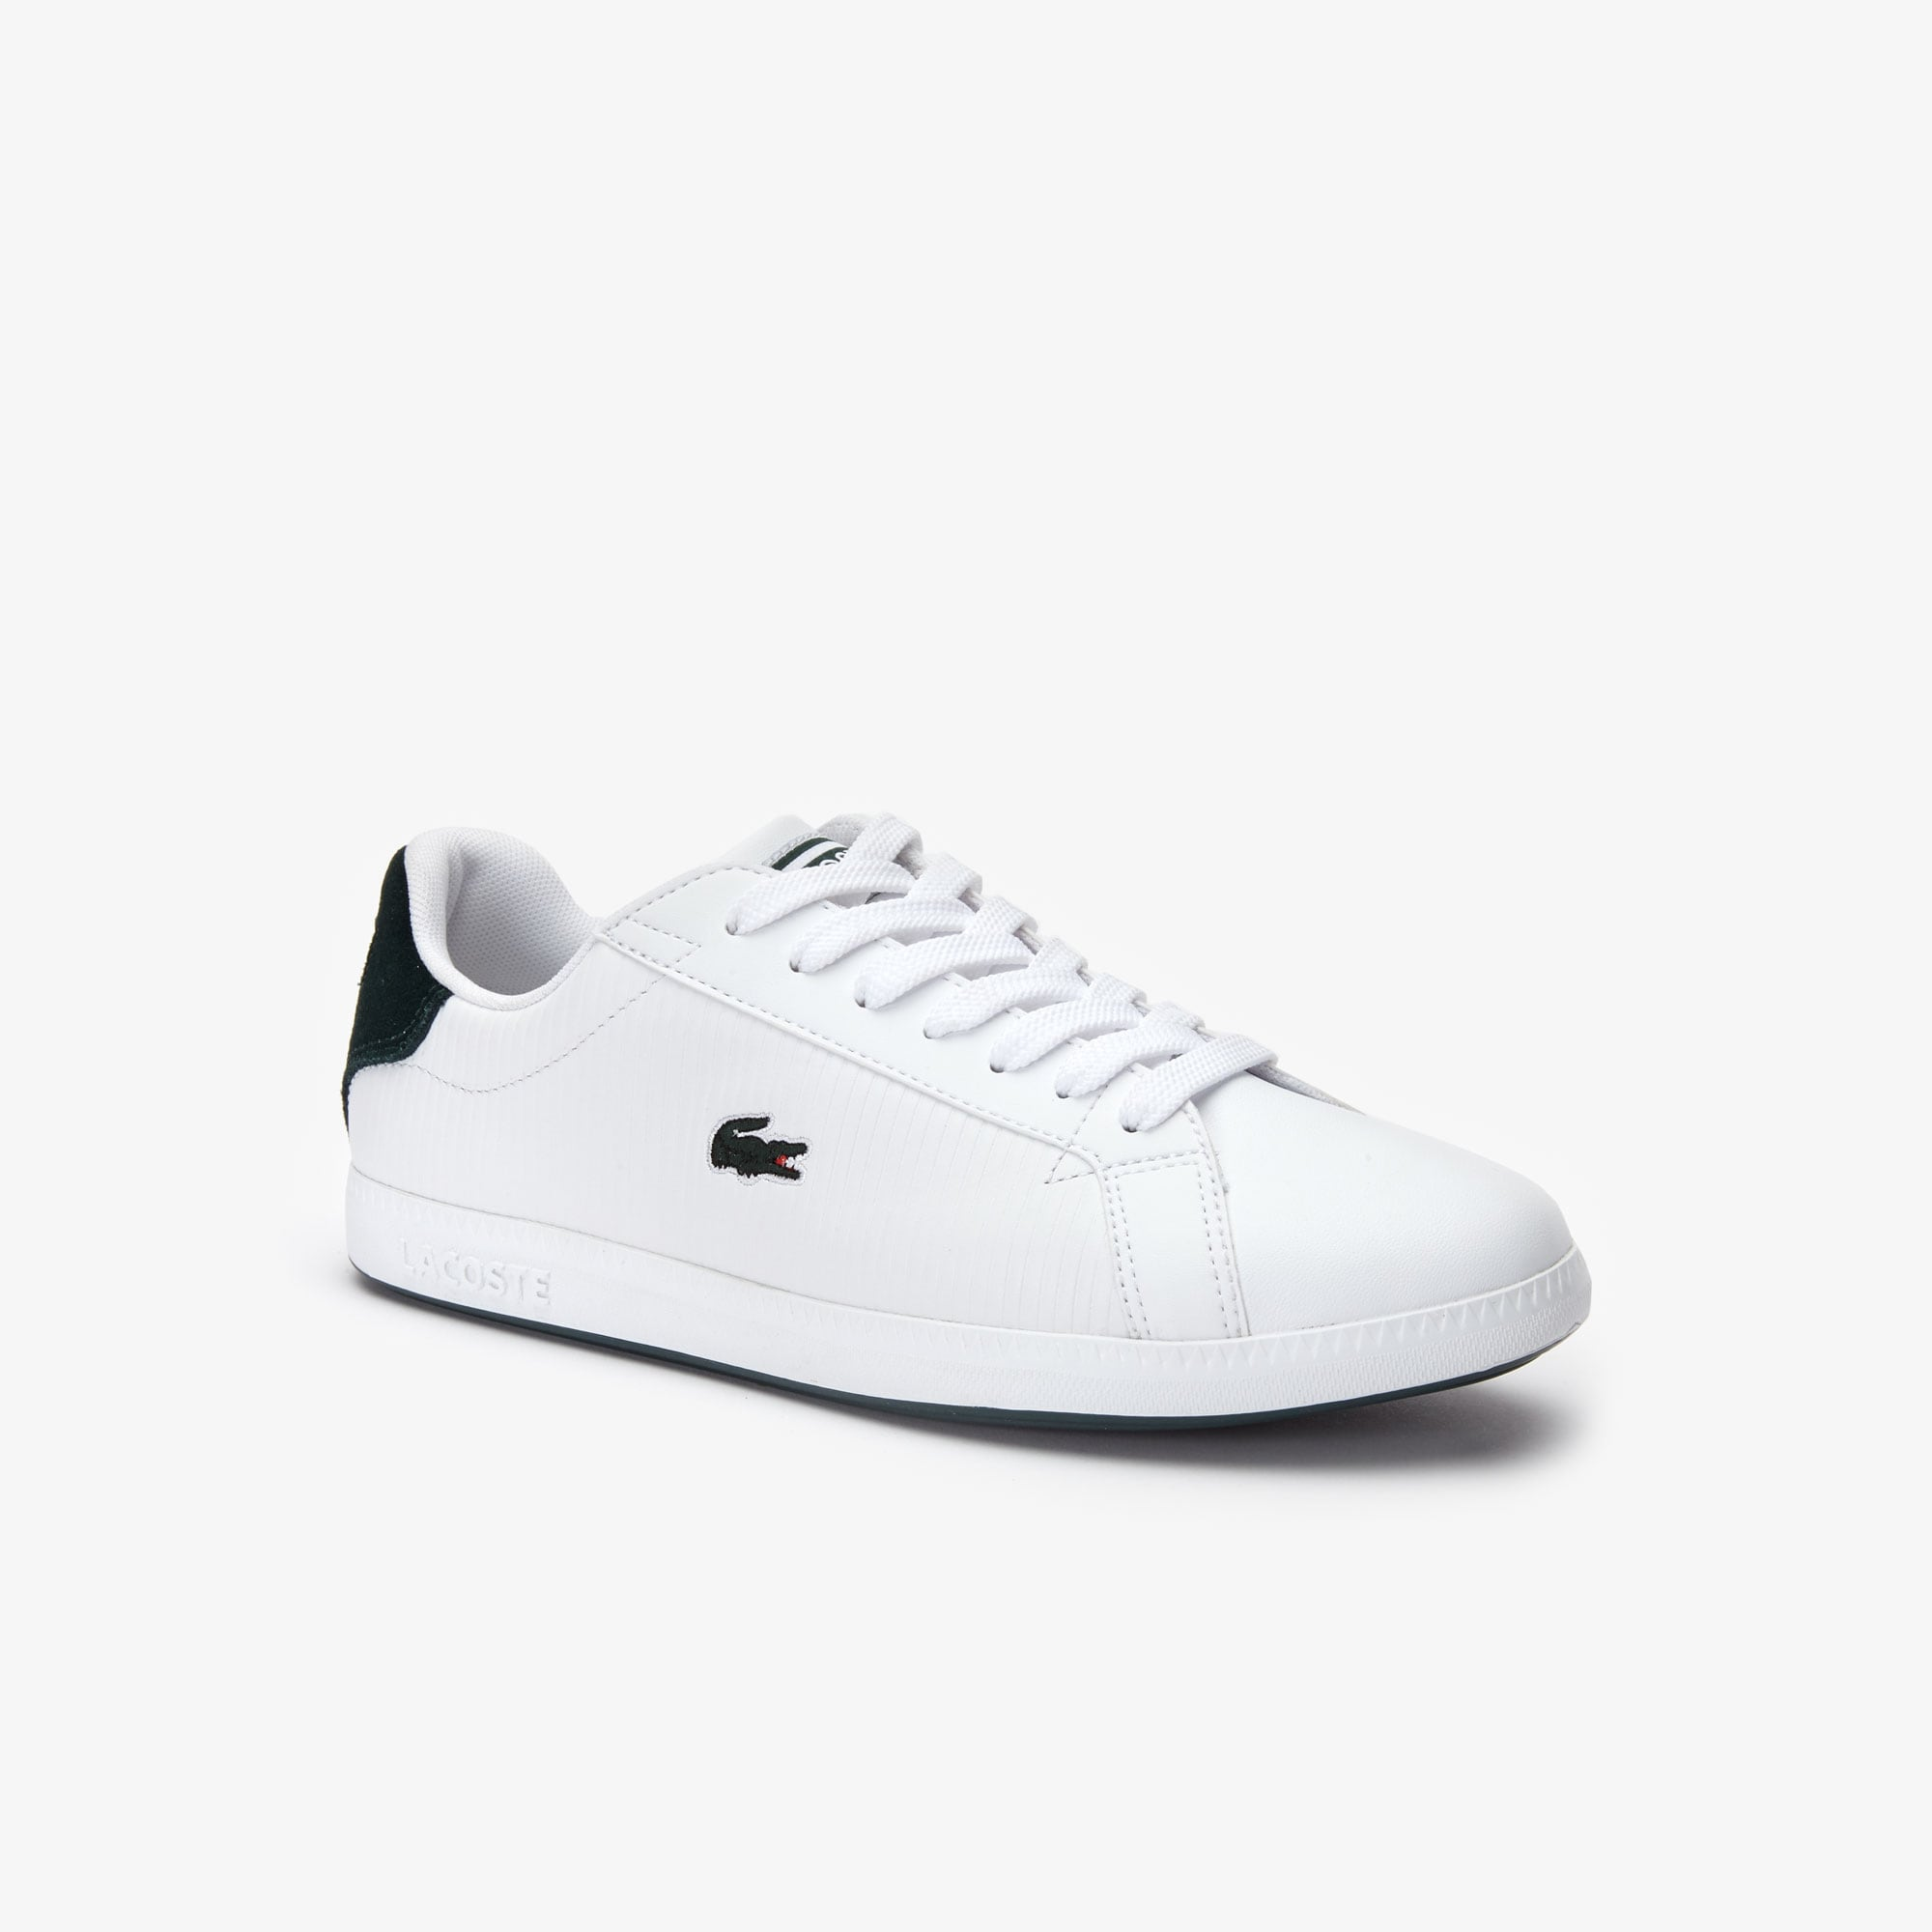 b9dca5c3c293e Shoes for Women | Footwear | LACOSTE